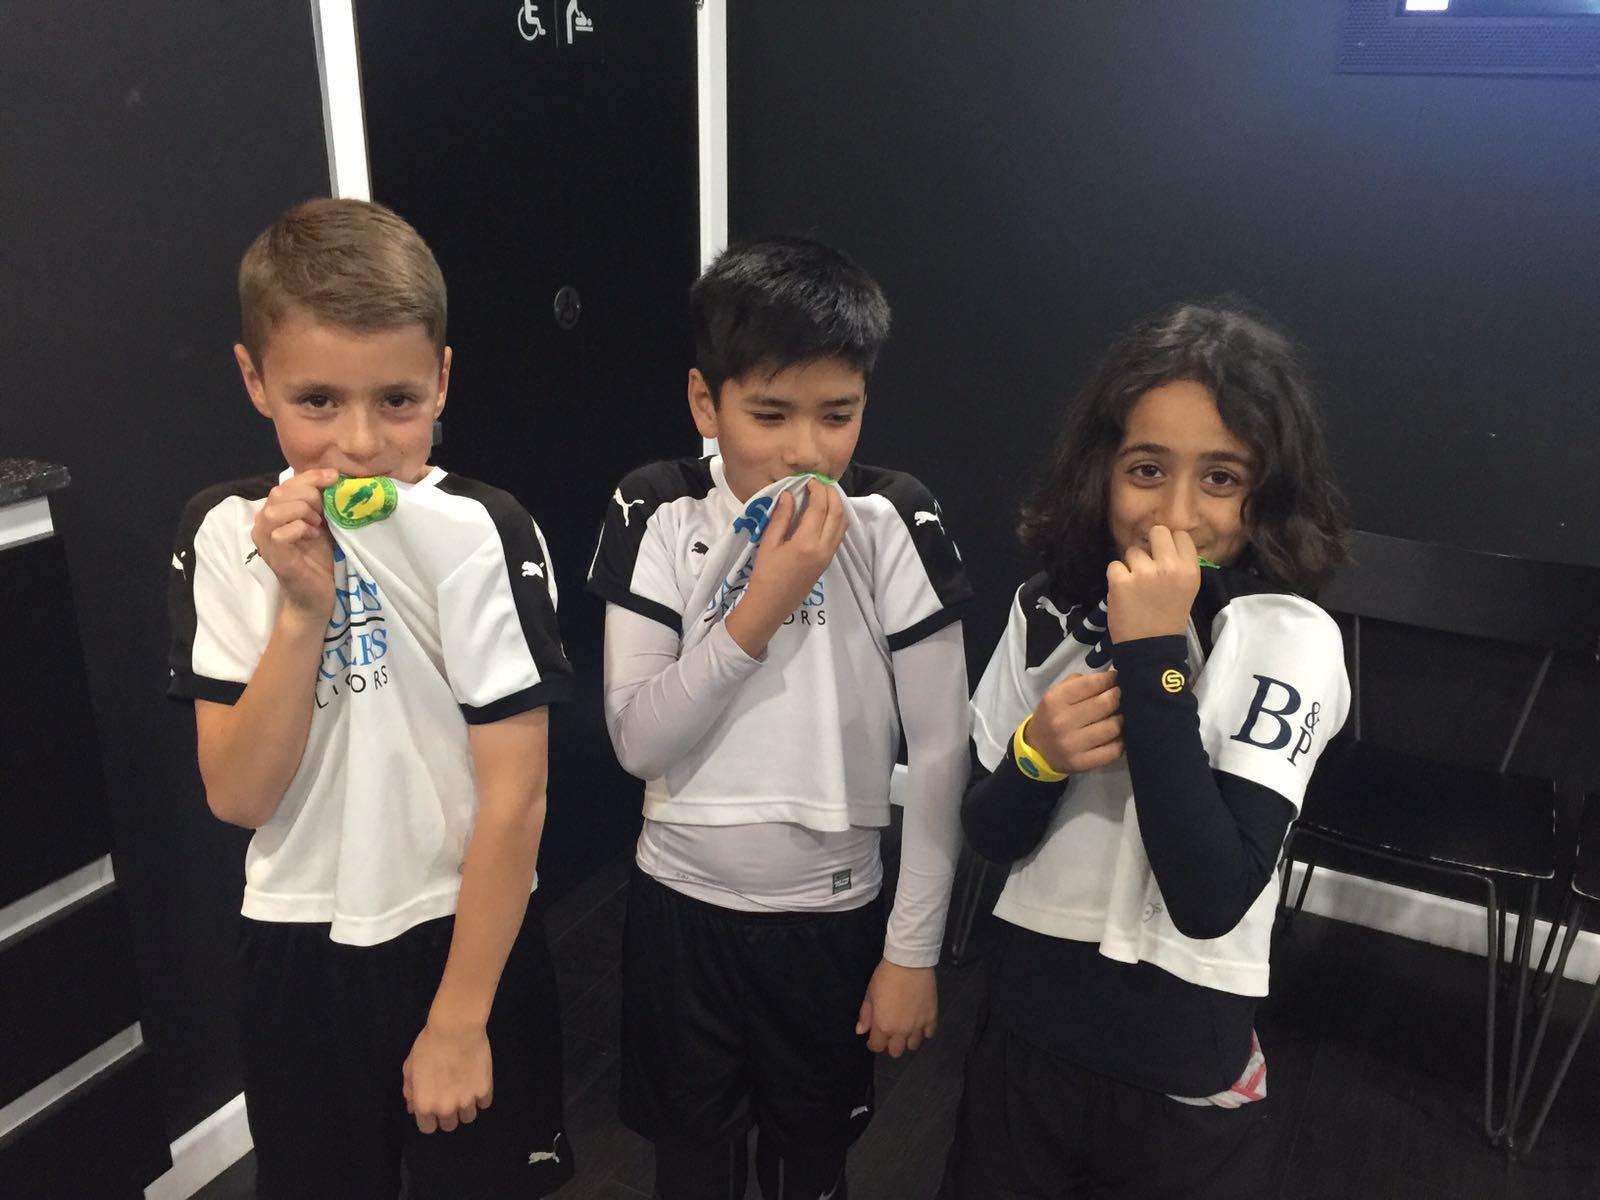 boys football clubs in Enfield for children